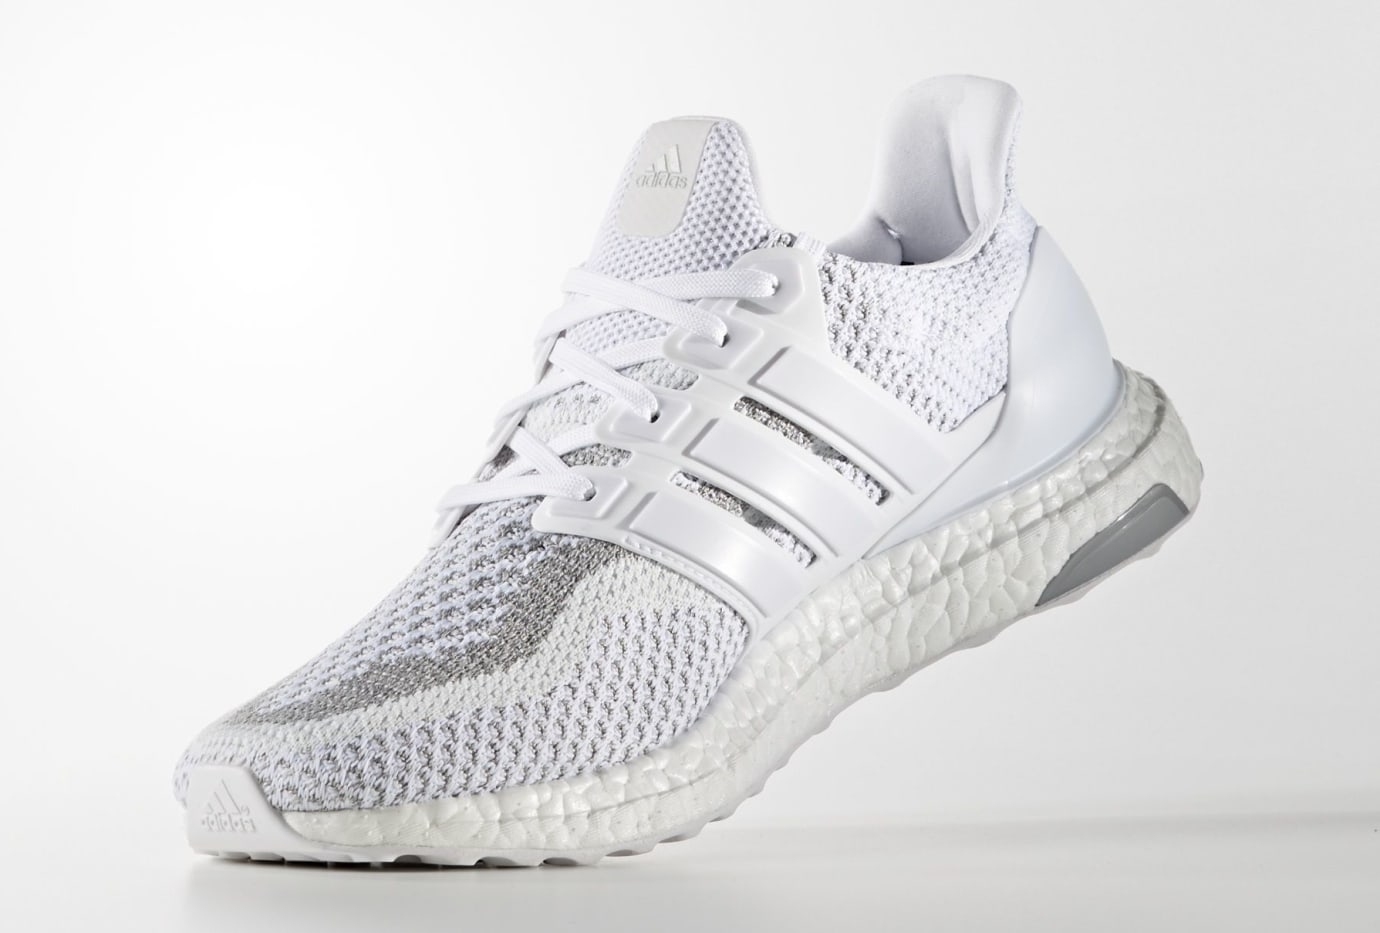 Adidas Ultra Boost 2.0 White Reflective 2018 Release Date BB3928 Medial